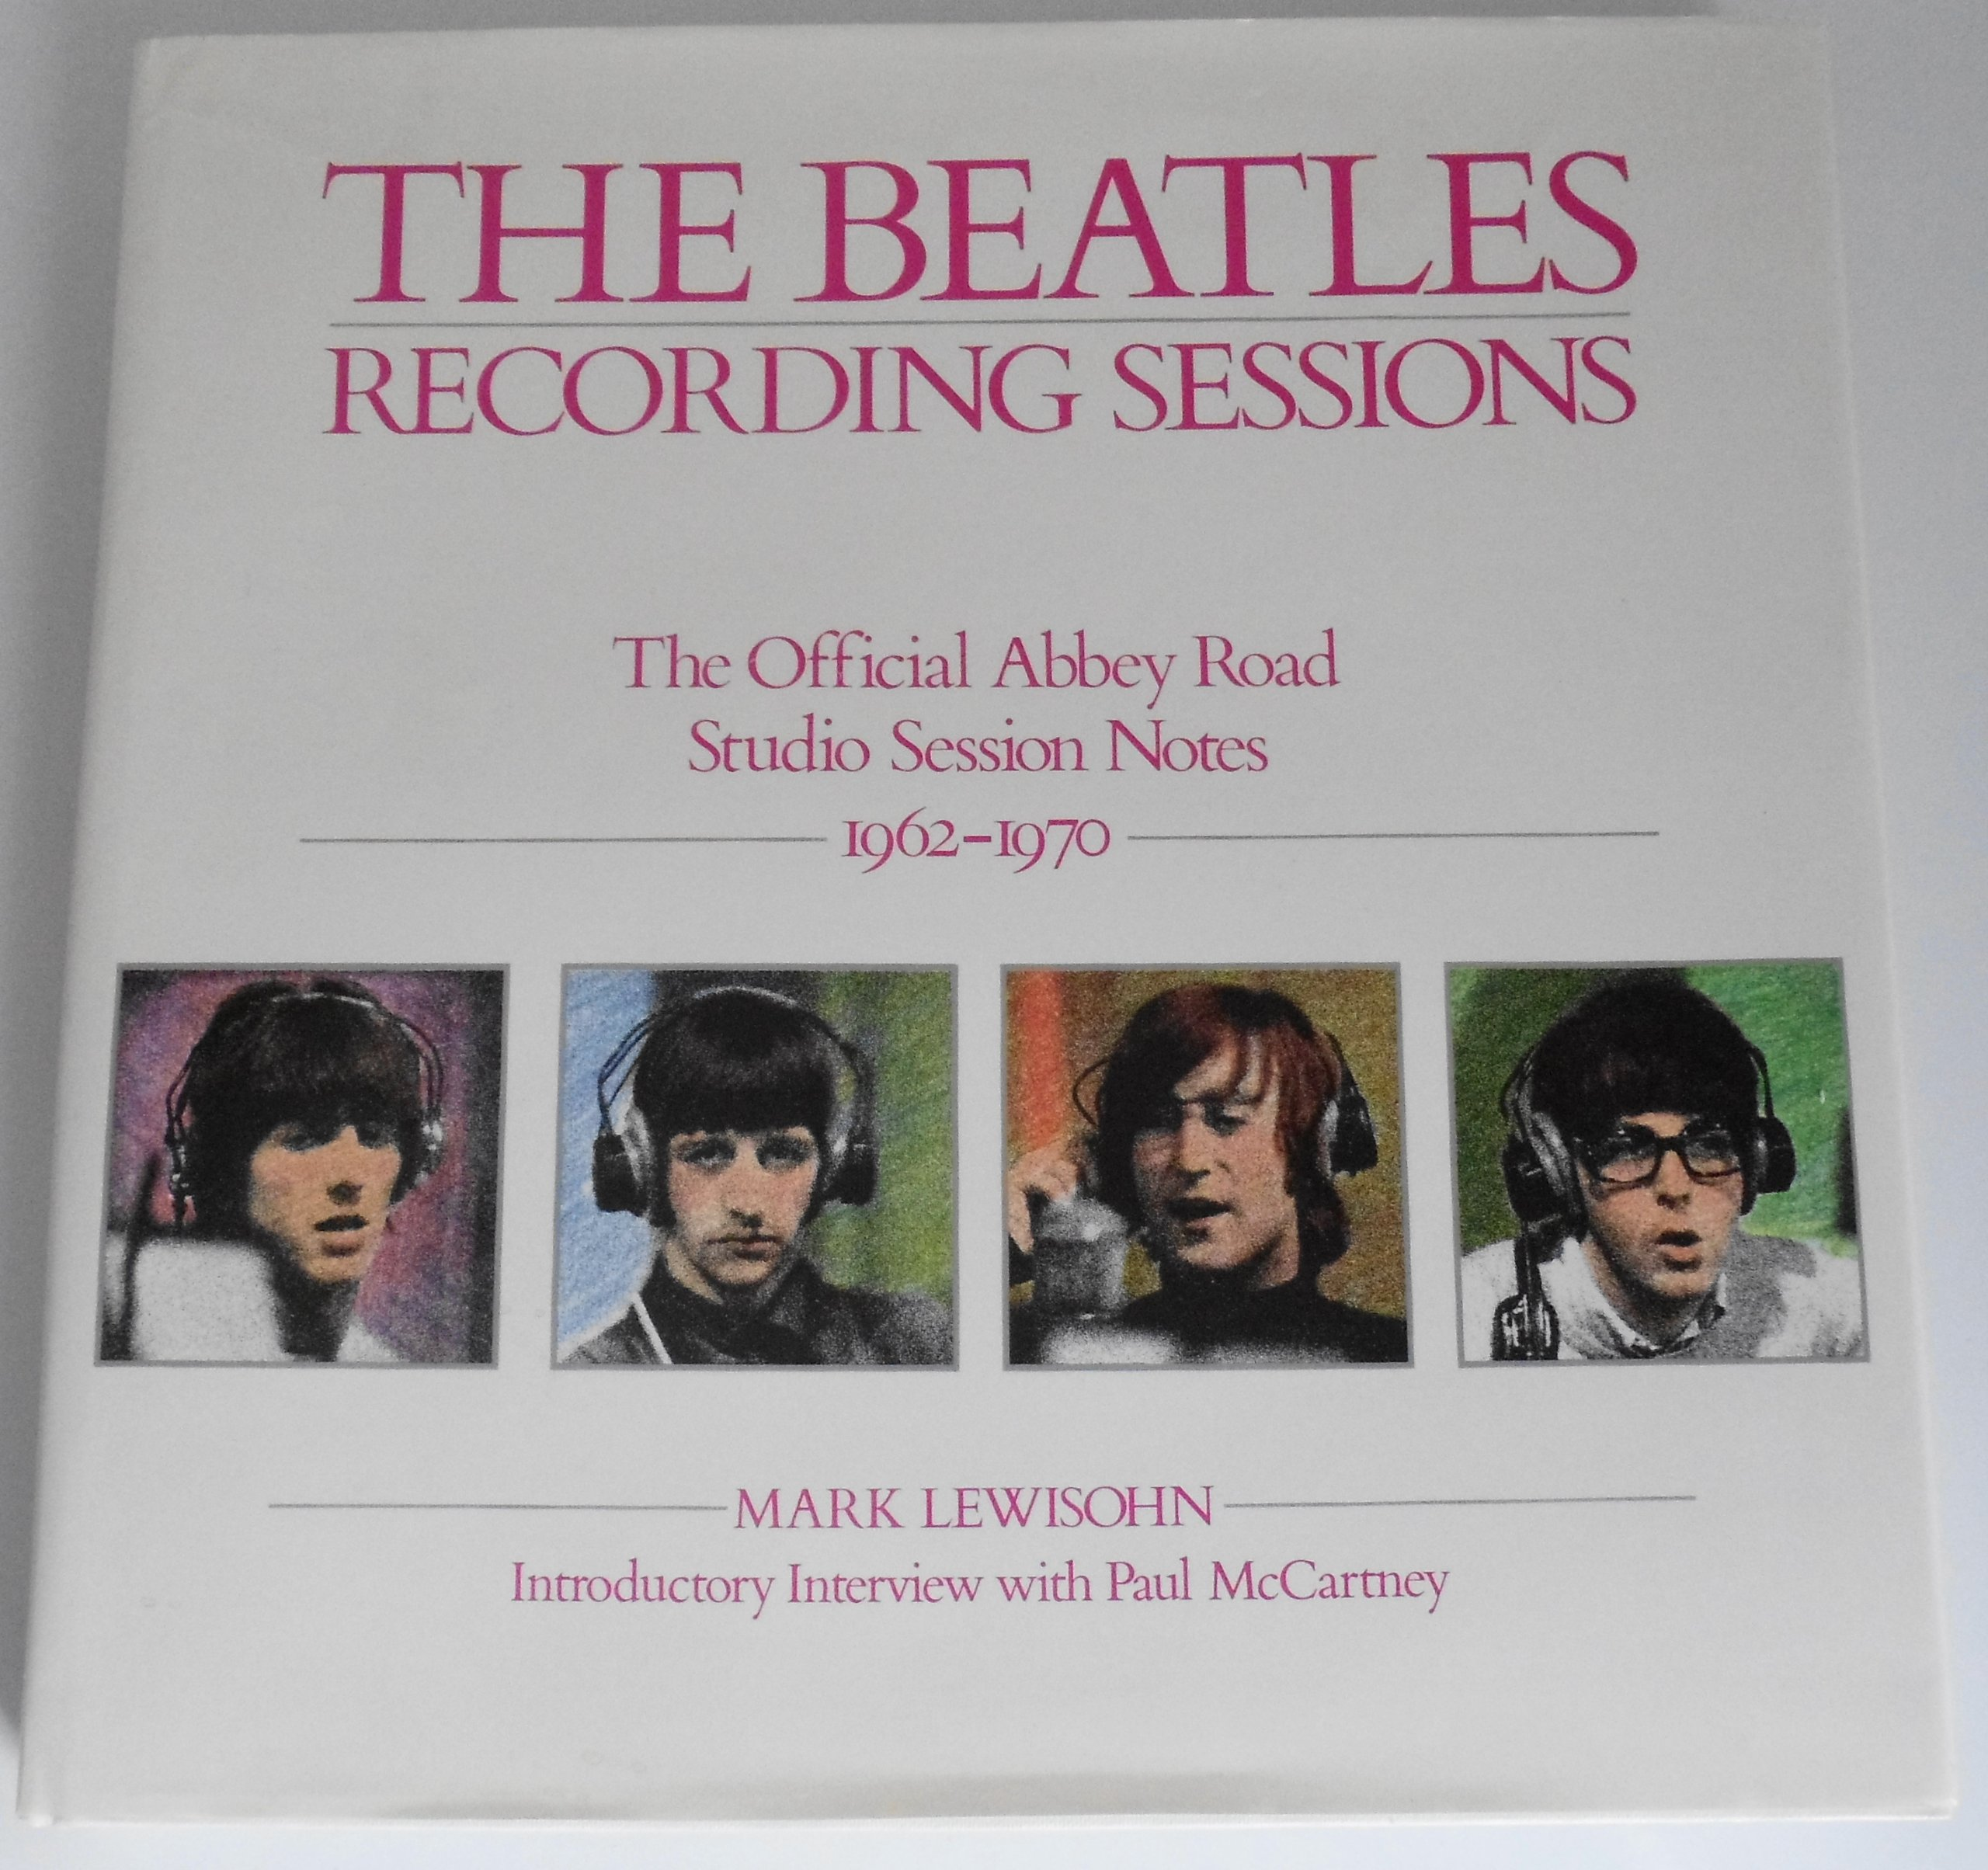 The Beatles Recording Sessions: The Official Abbey Road Studio Session Notes 1962-1970